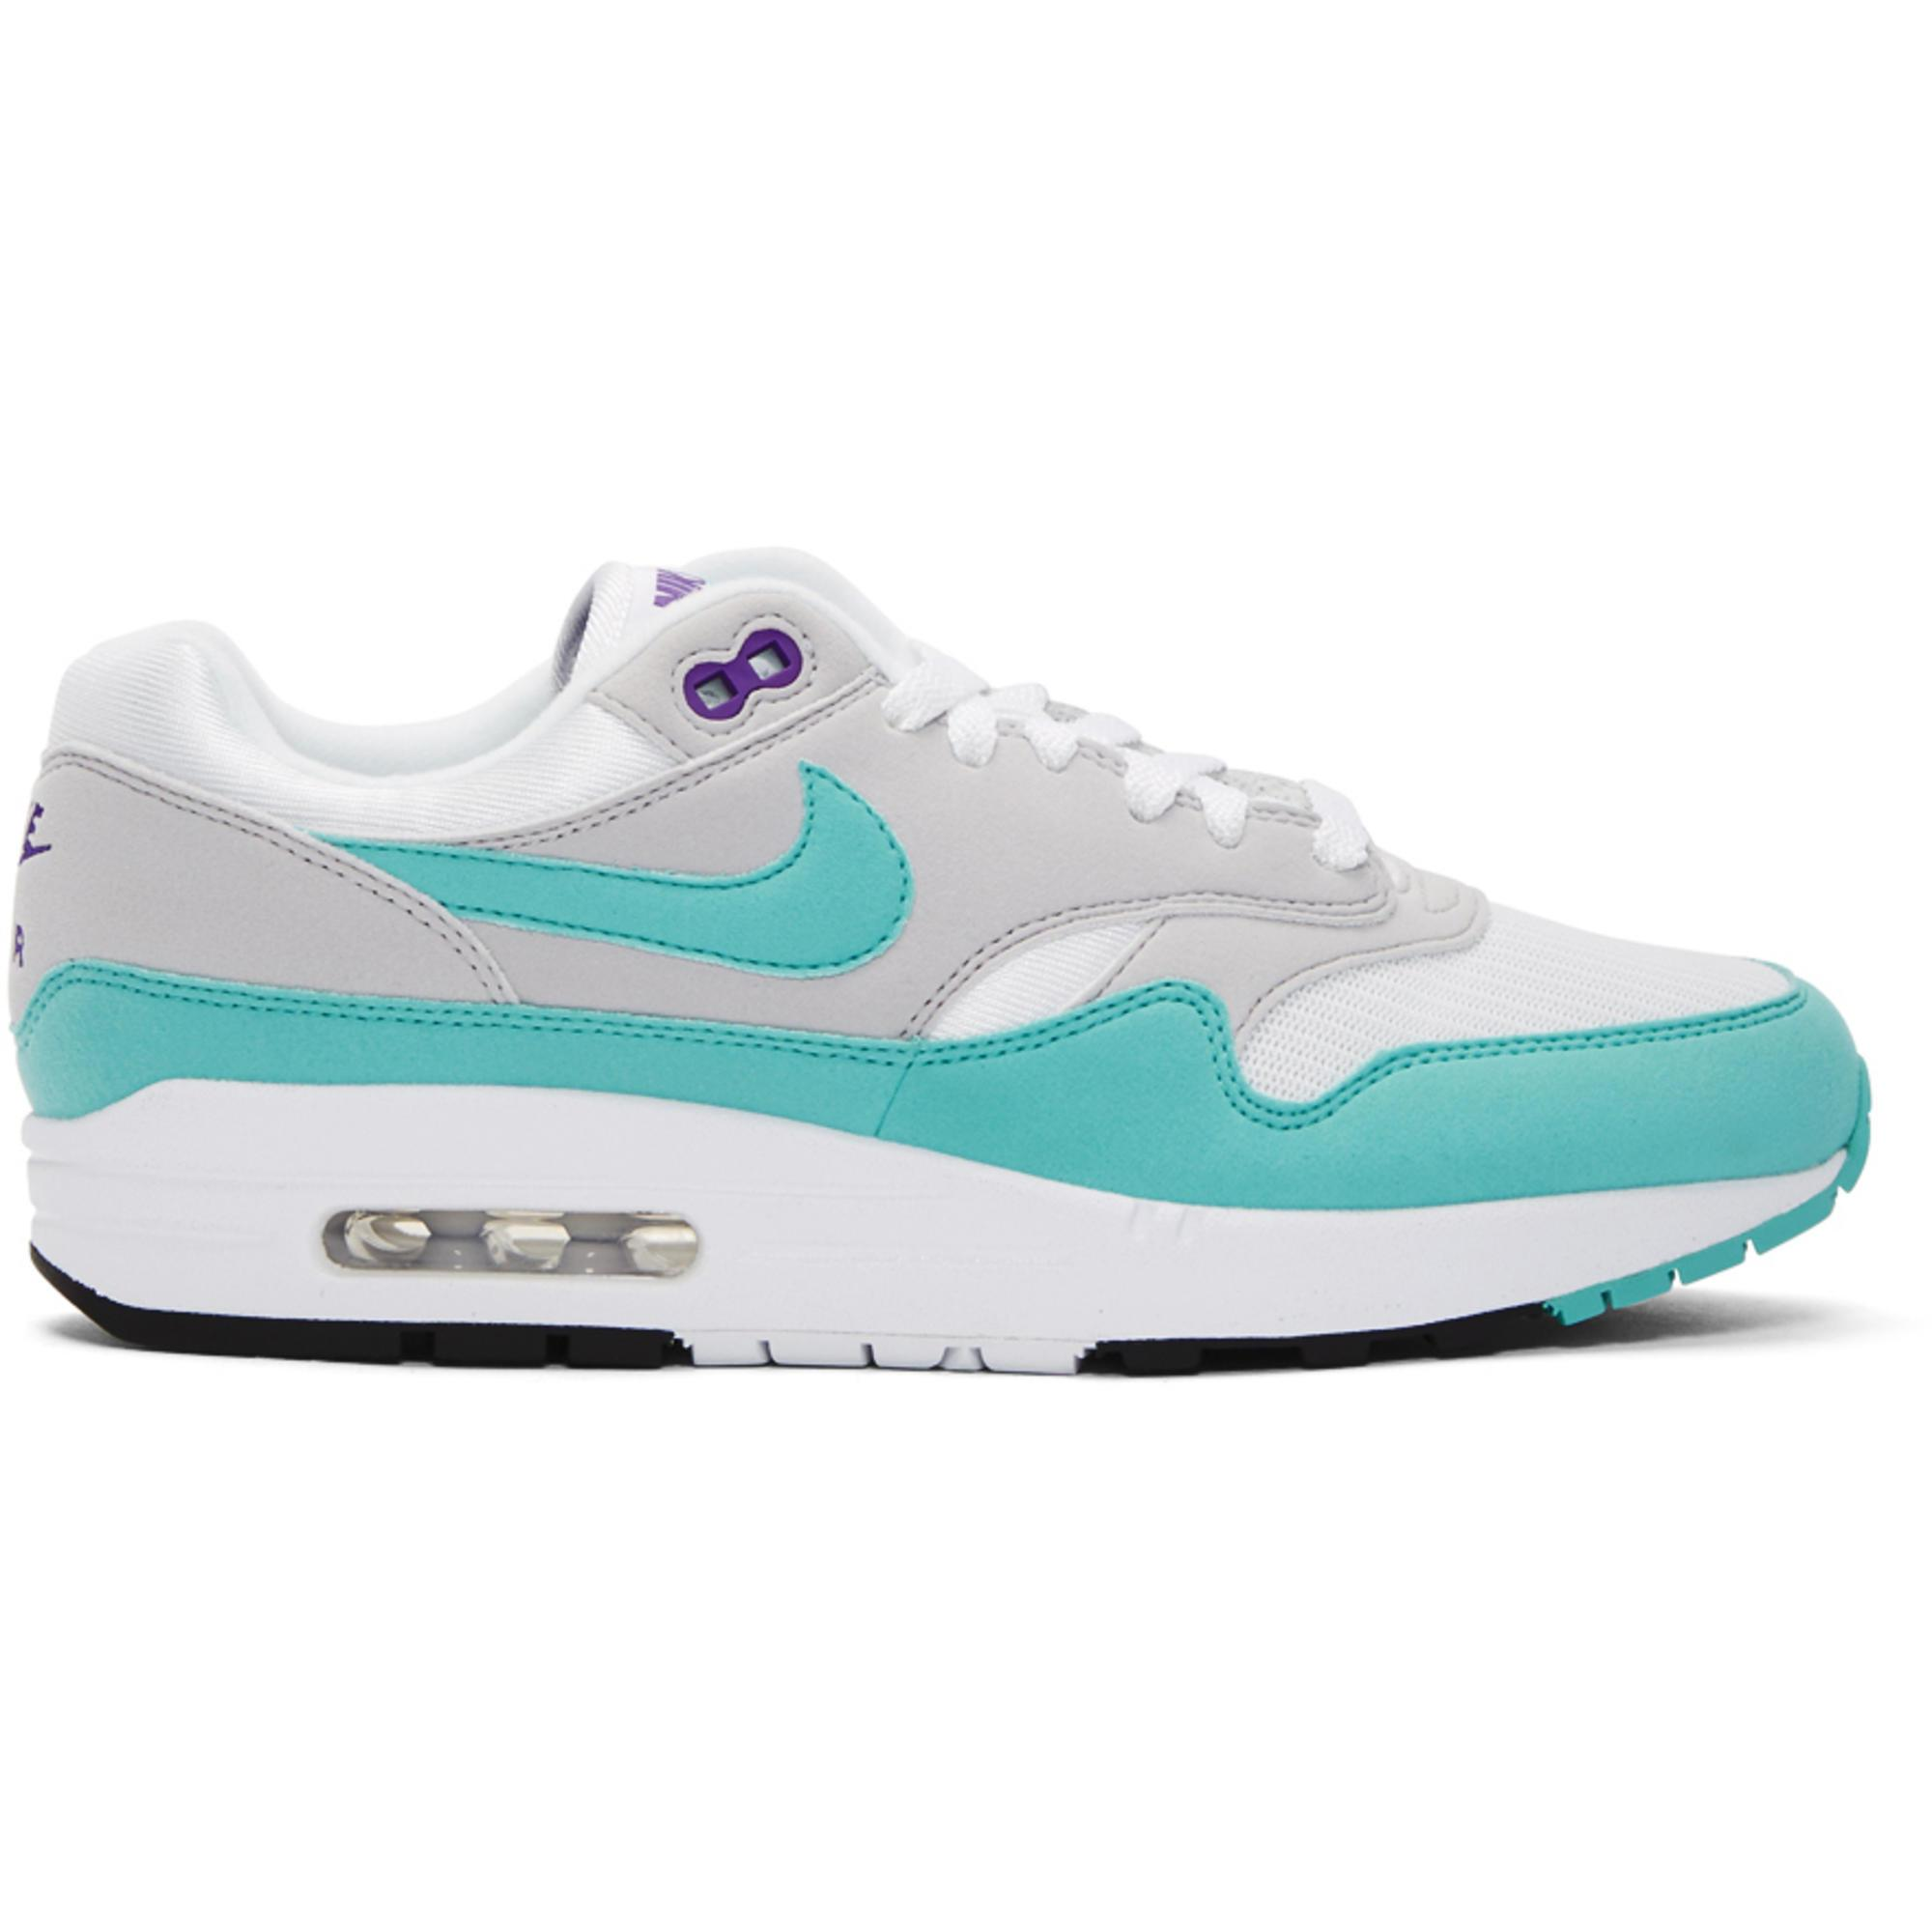 Lyst Nike White And Blue Air Max 1 Anniversary Sneakers in